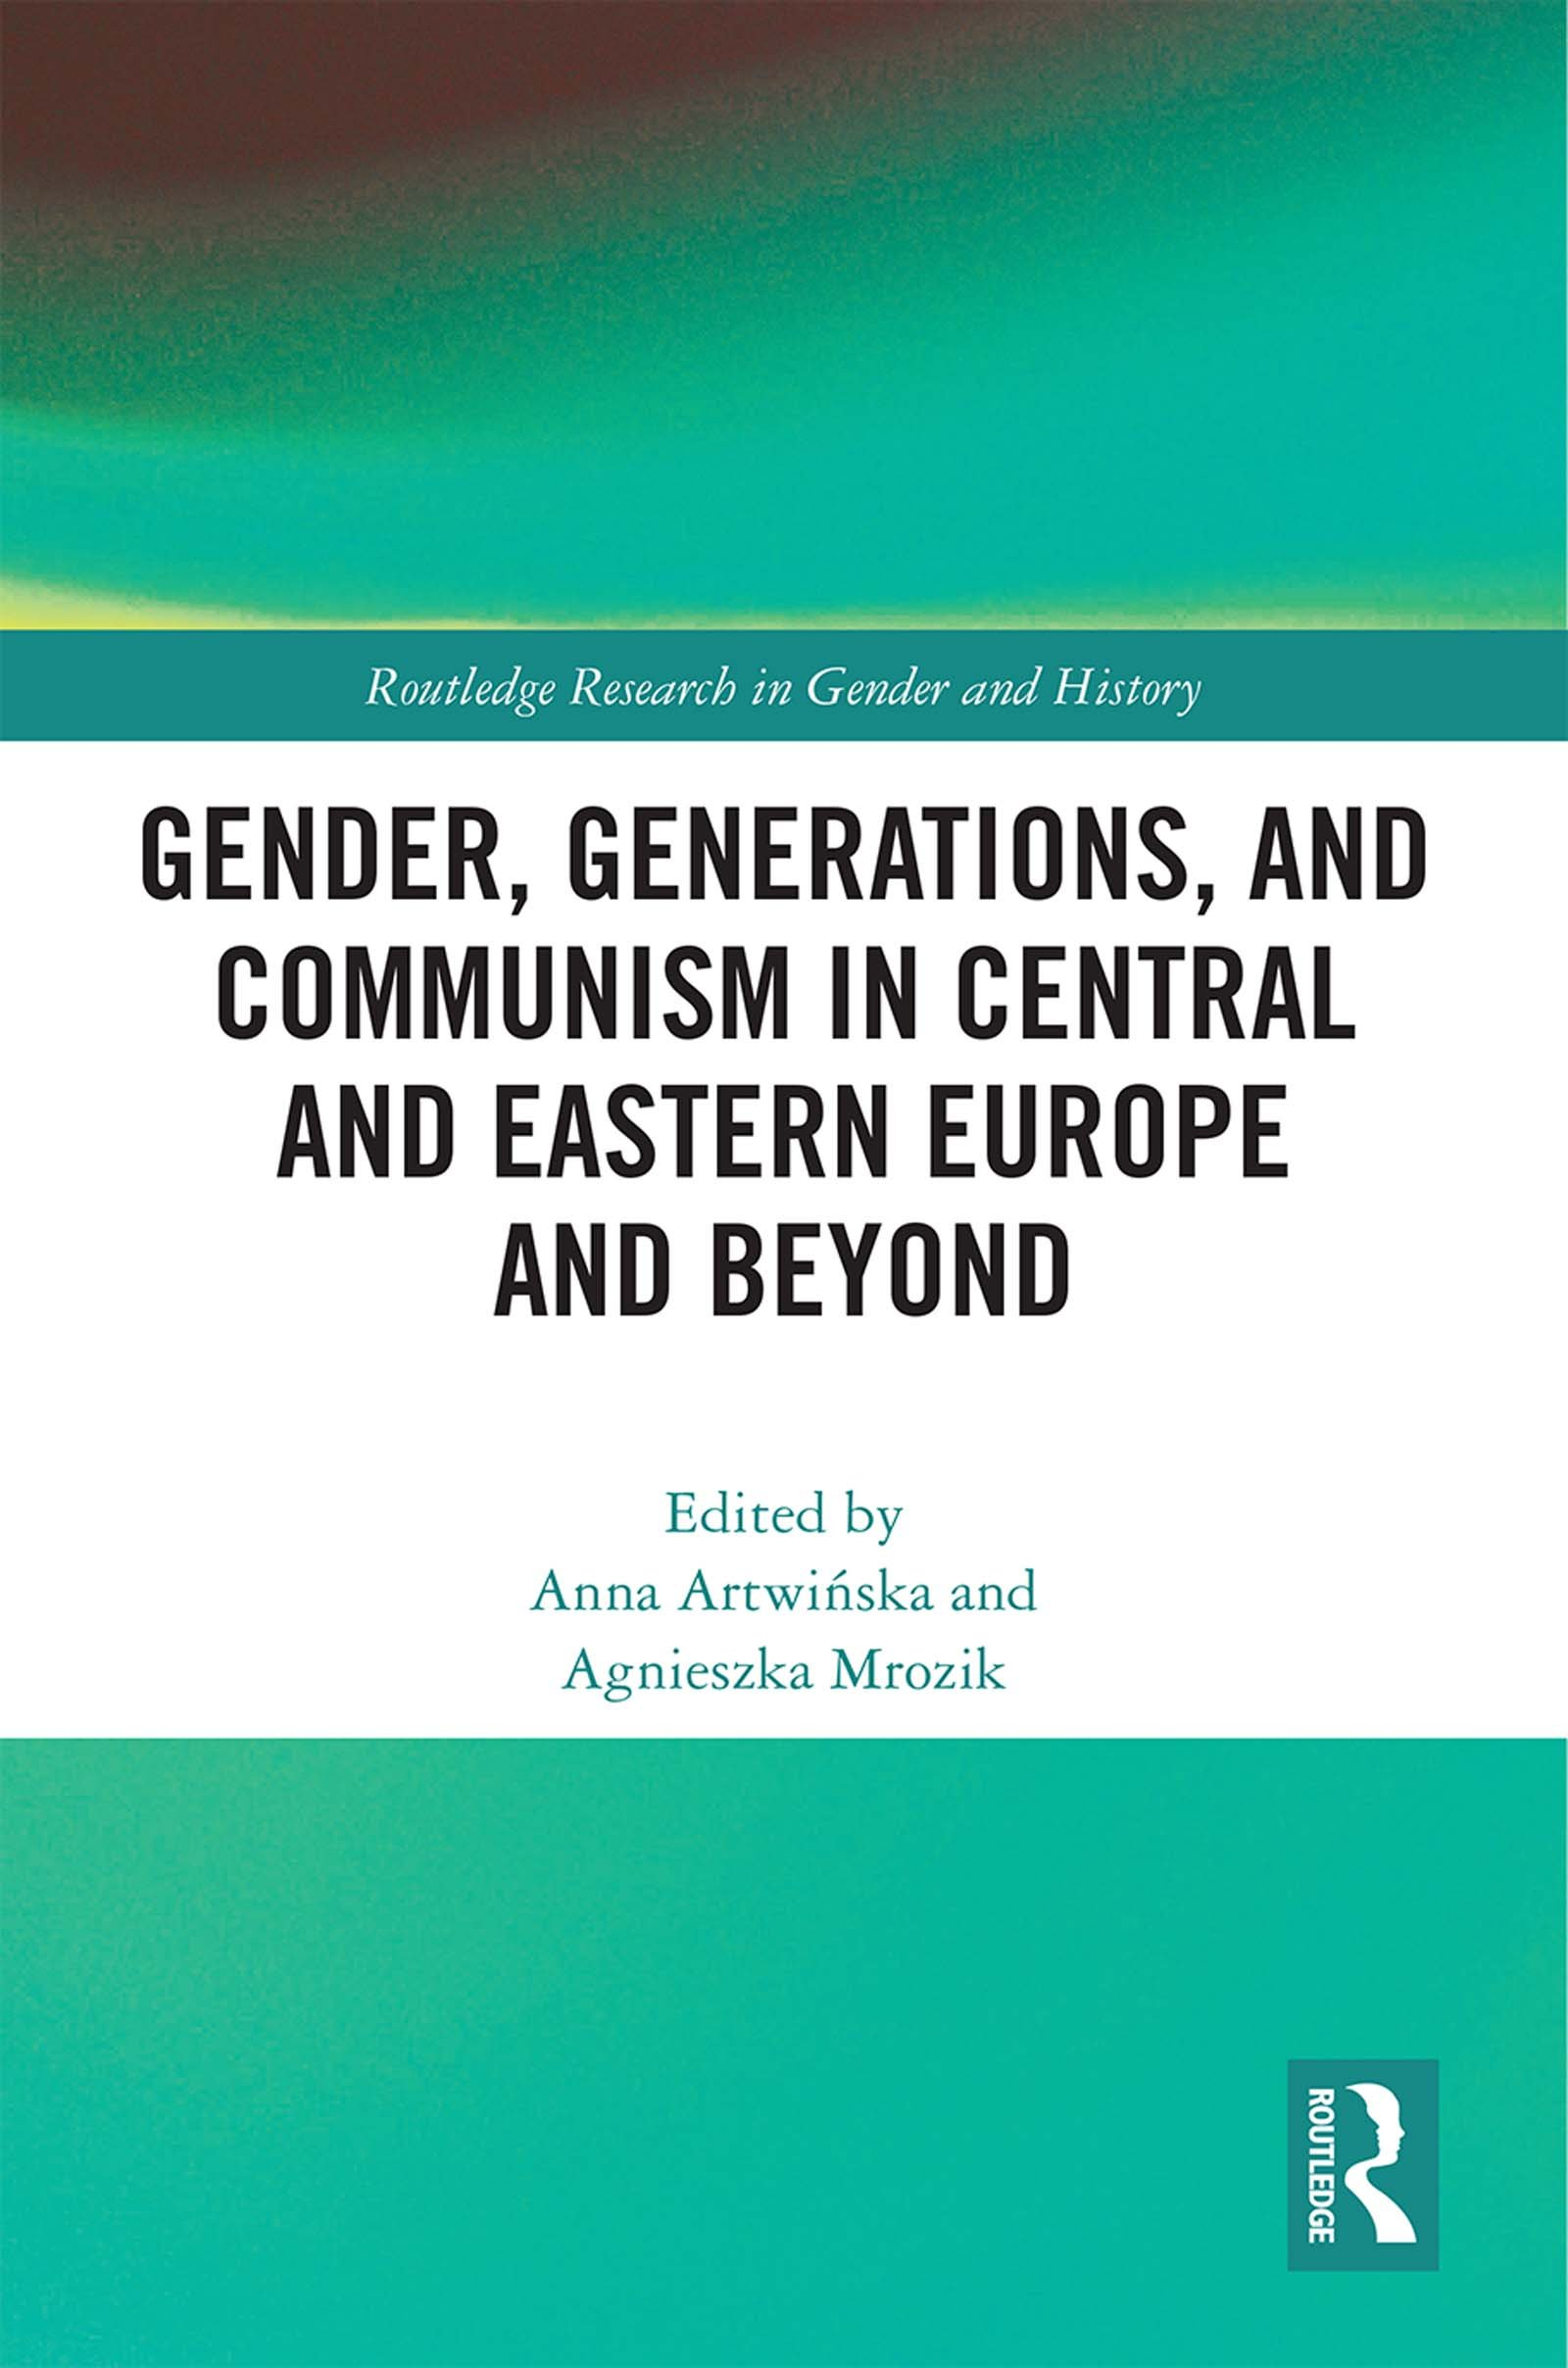 Gender, Generations, and Communism in Central and Eastern Europe and Beyond